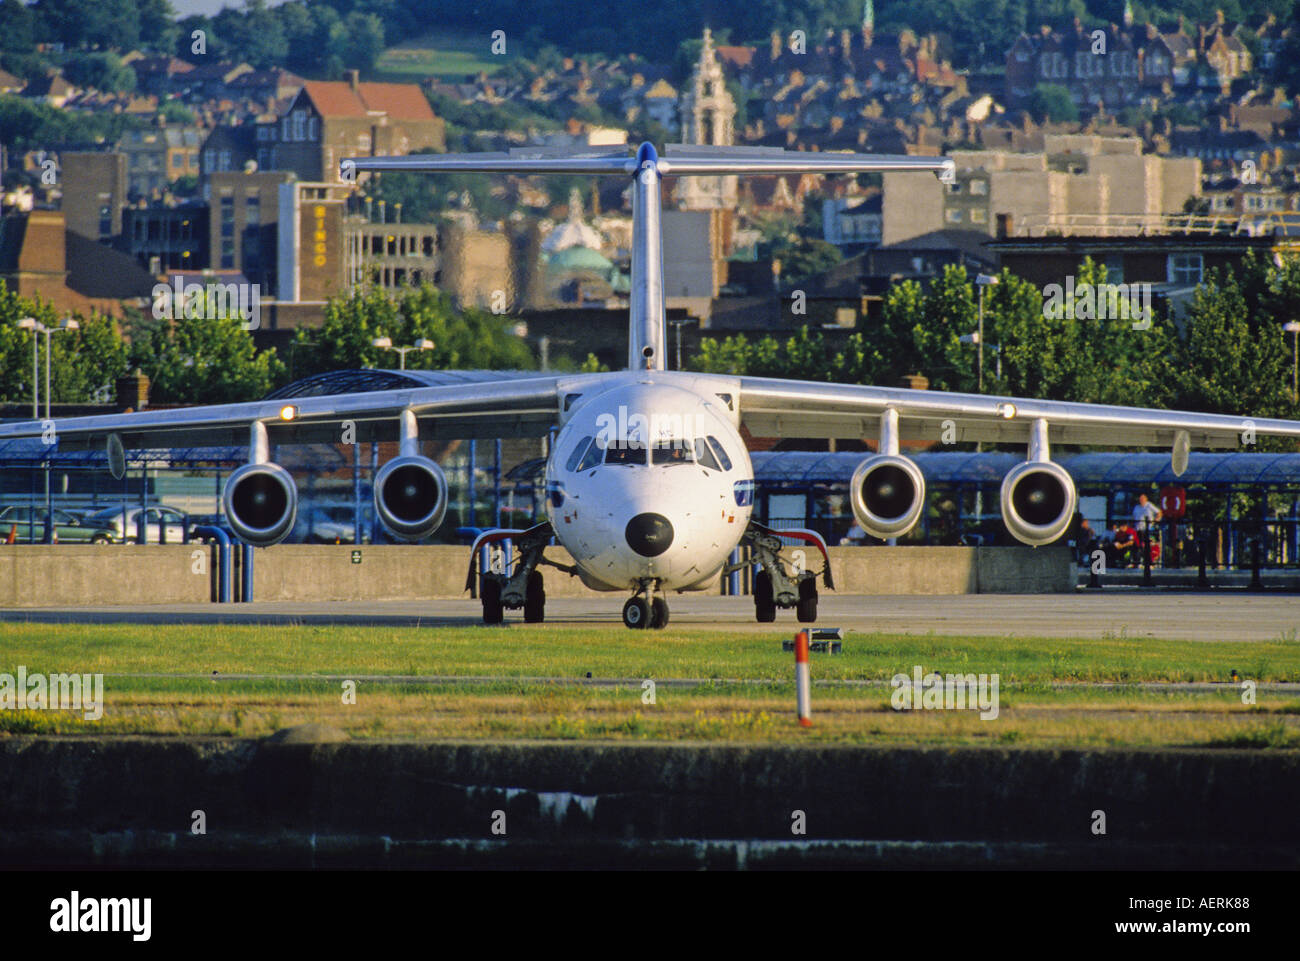 BAe 146 is taxing at London City Airport - Stock Image